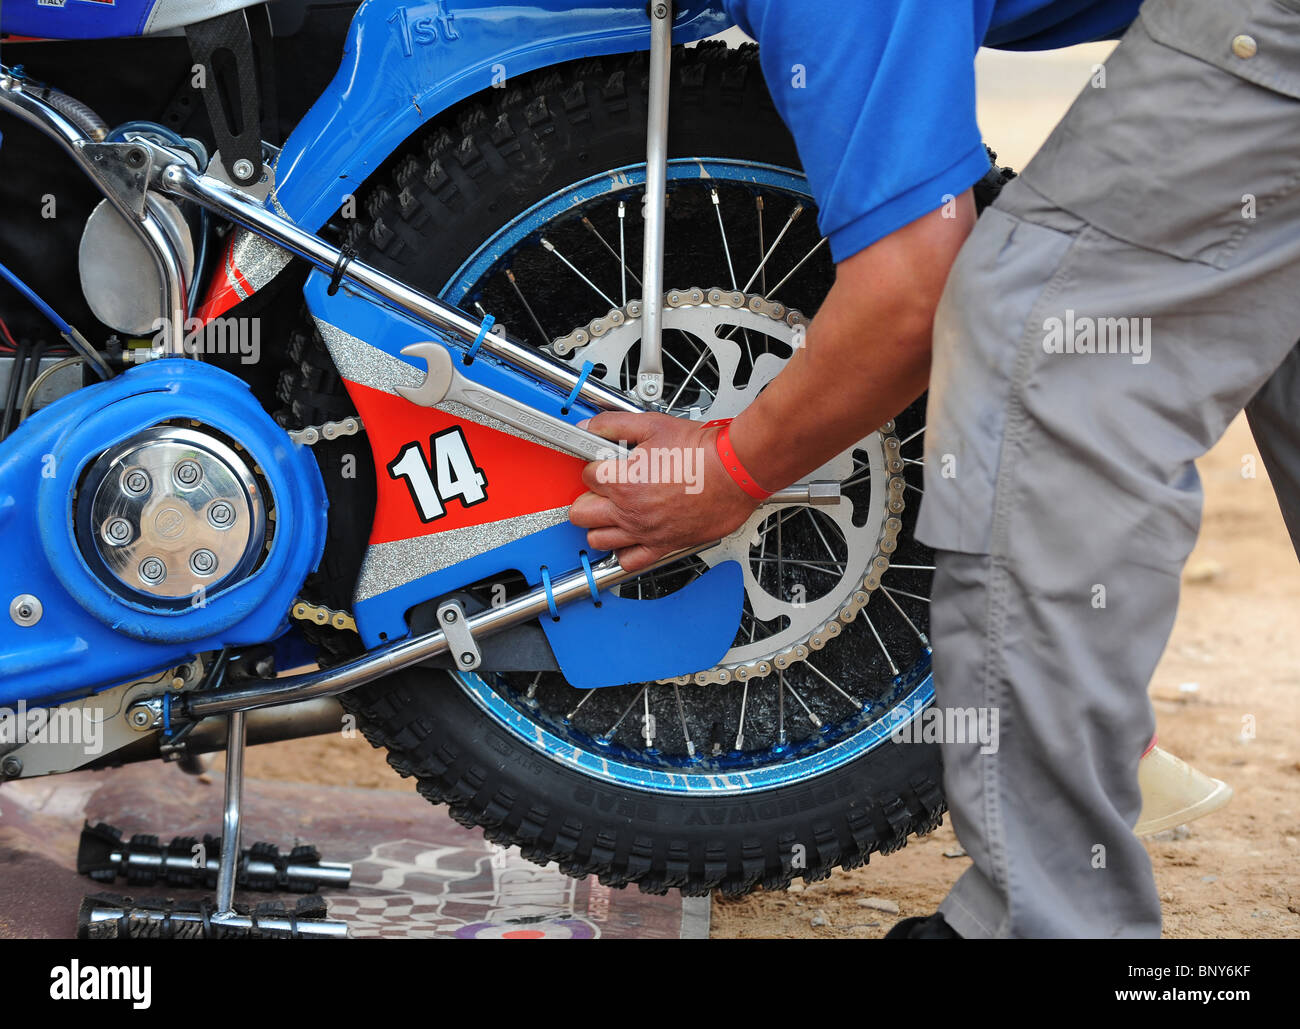 A speedway bike is worked on by a mechanic in the pits - Stock Image